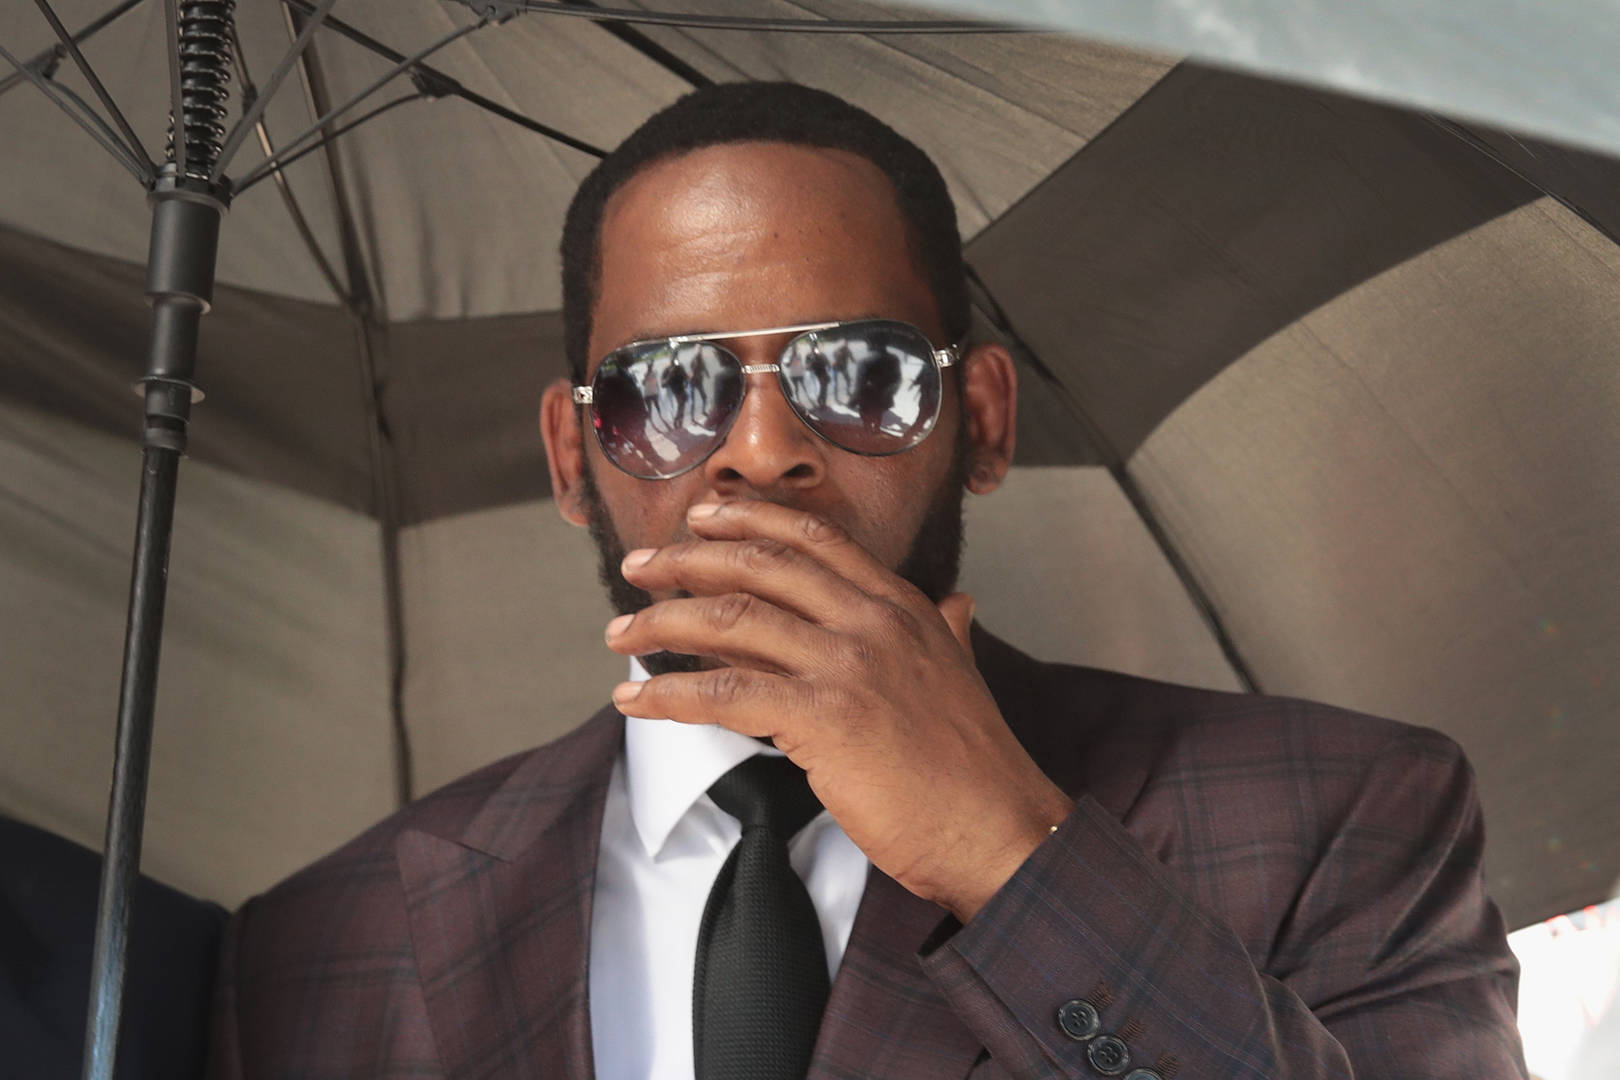 R. Kelly reportedly taking donations to hire Michael Jackson's lawyer